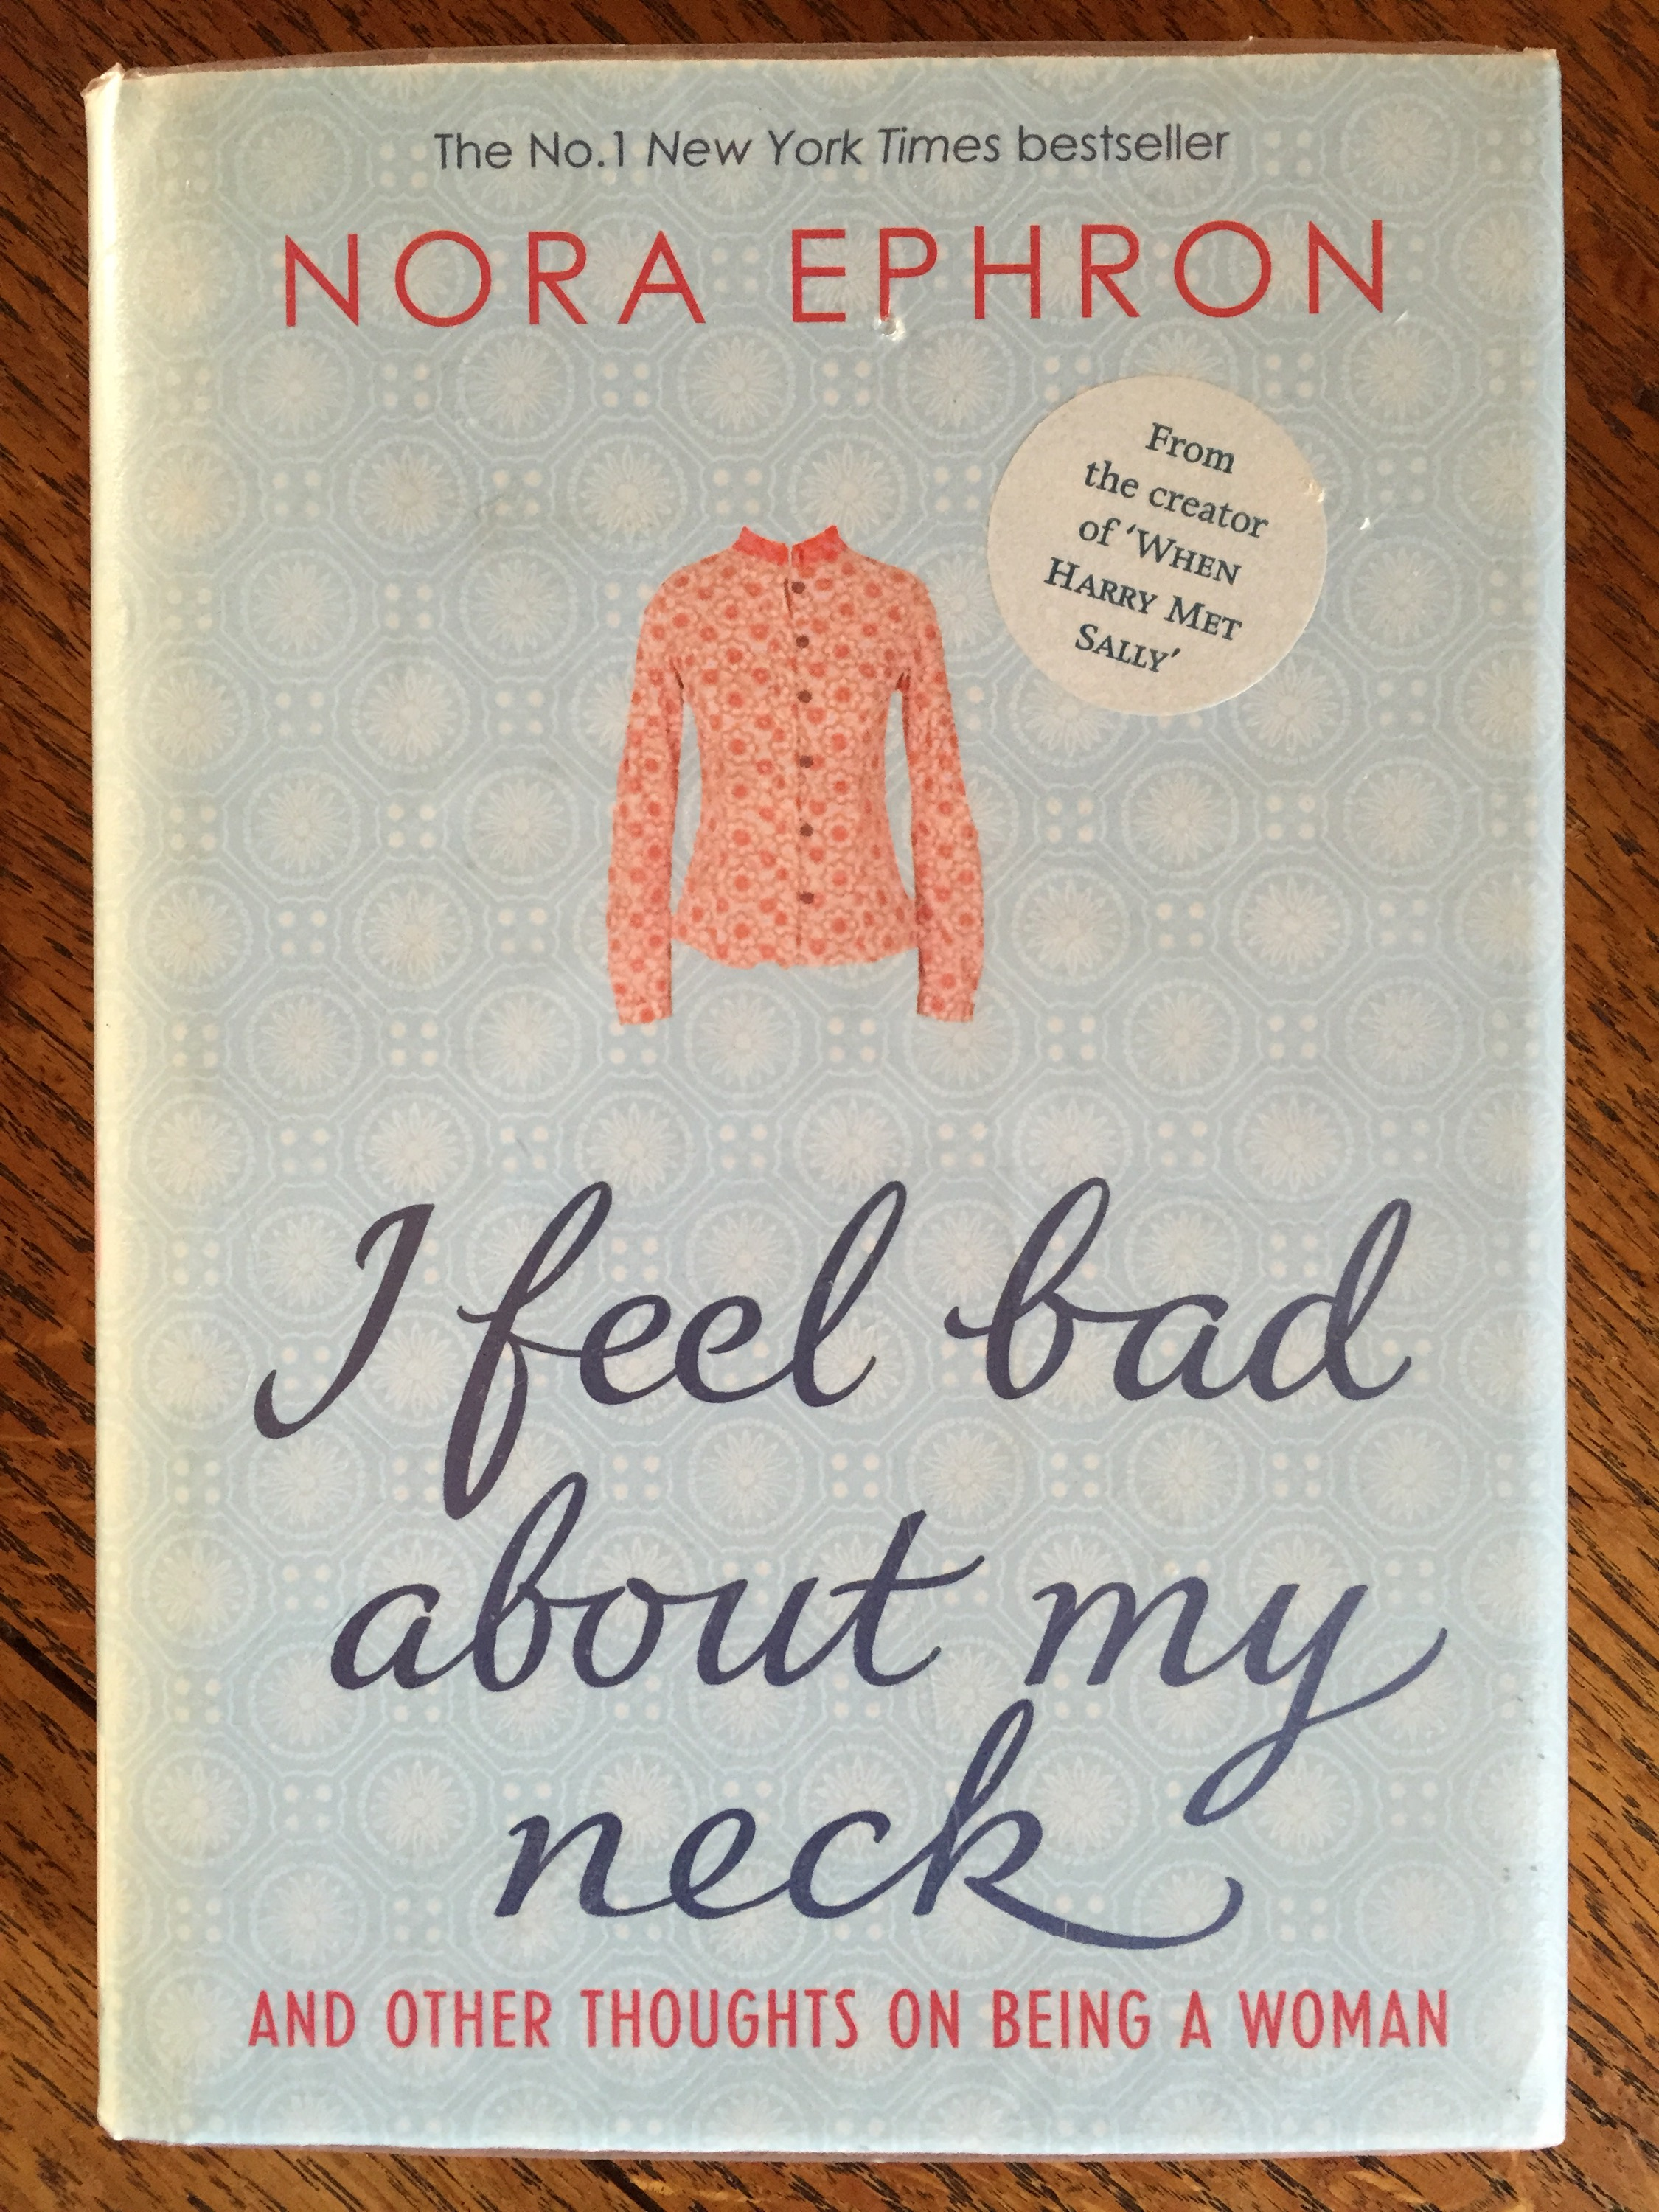 nora ephron breasts essay Nora ephron ephron, nora (vol 31) - essay  ephron revealed everything from her obsession with having small breasts to the  the script by nora ephron.